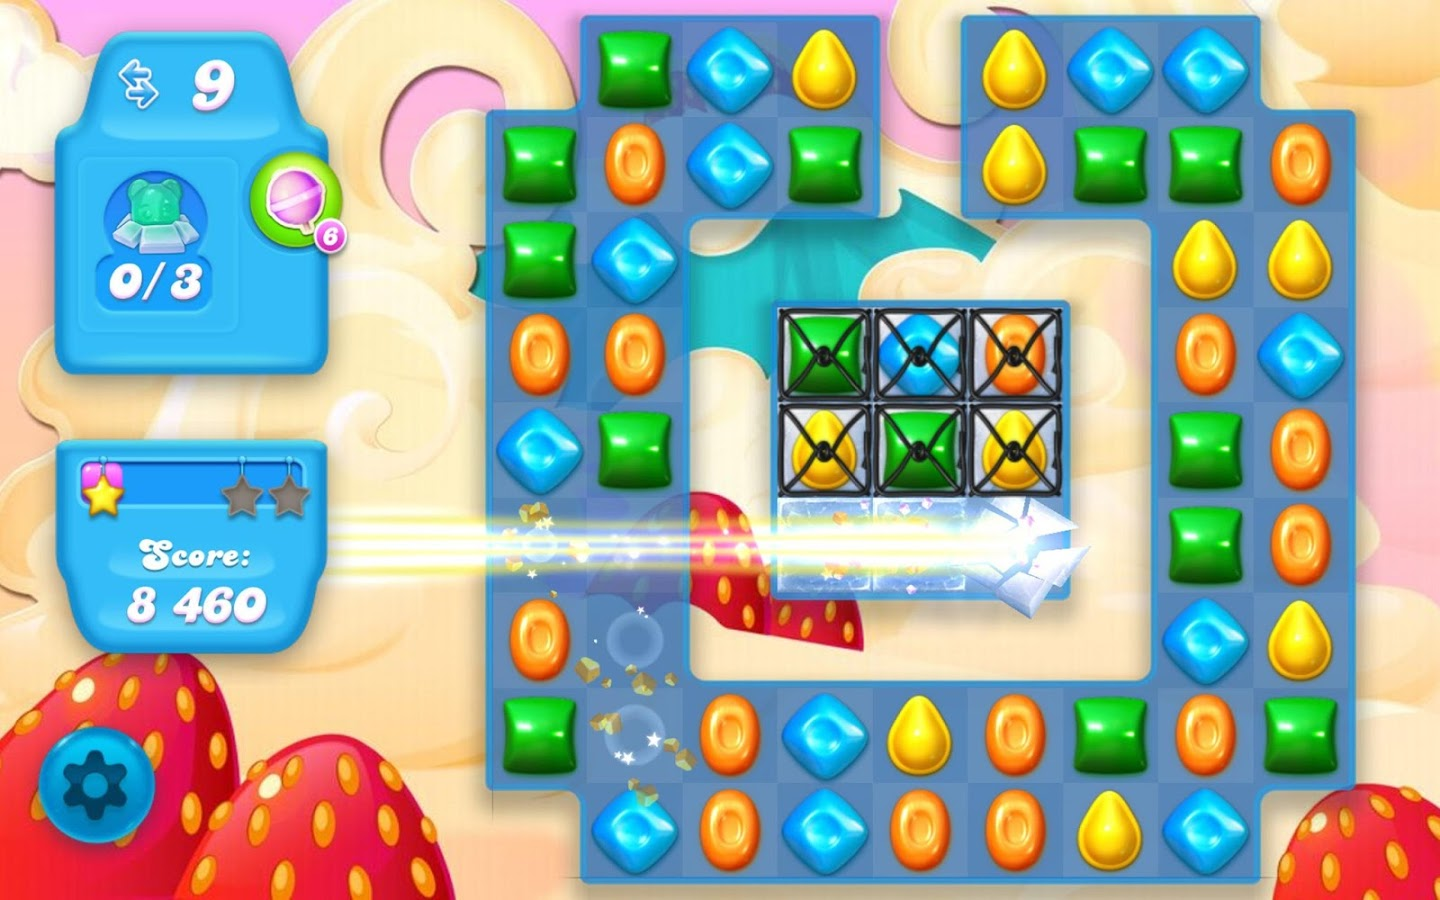 Candy Crush Soda Wallpaper Candy Crush Soda Saga